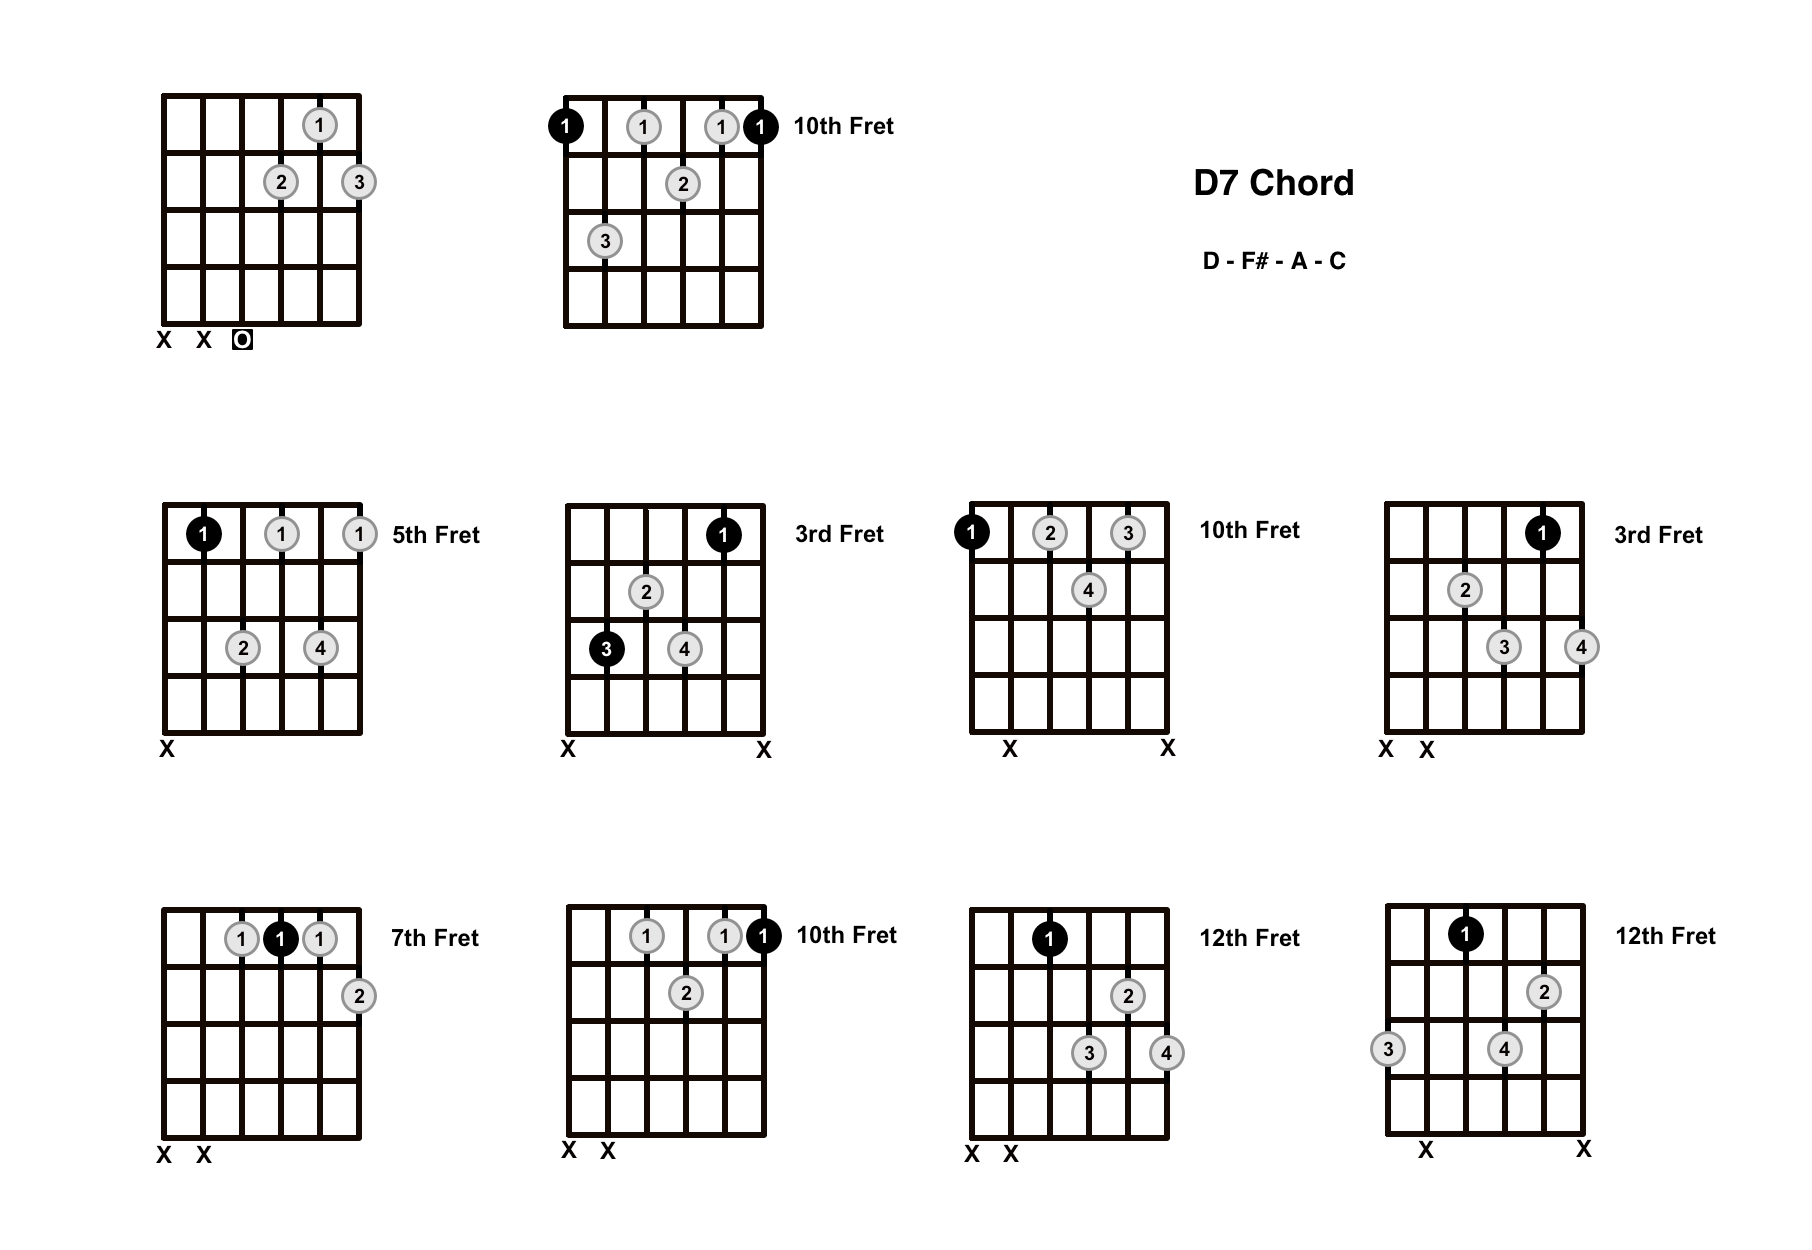 D7 Chord On The Guitar (D Dominant 7) – Diagrams, Finger Positions and Theory